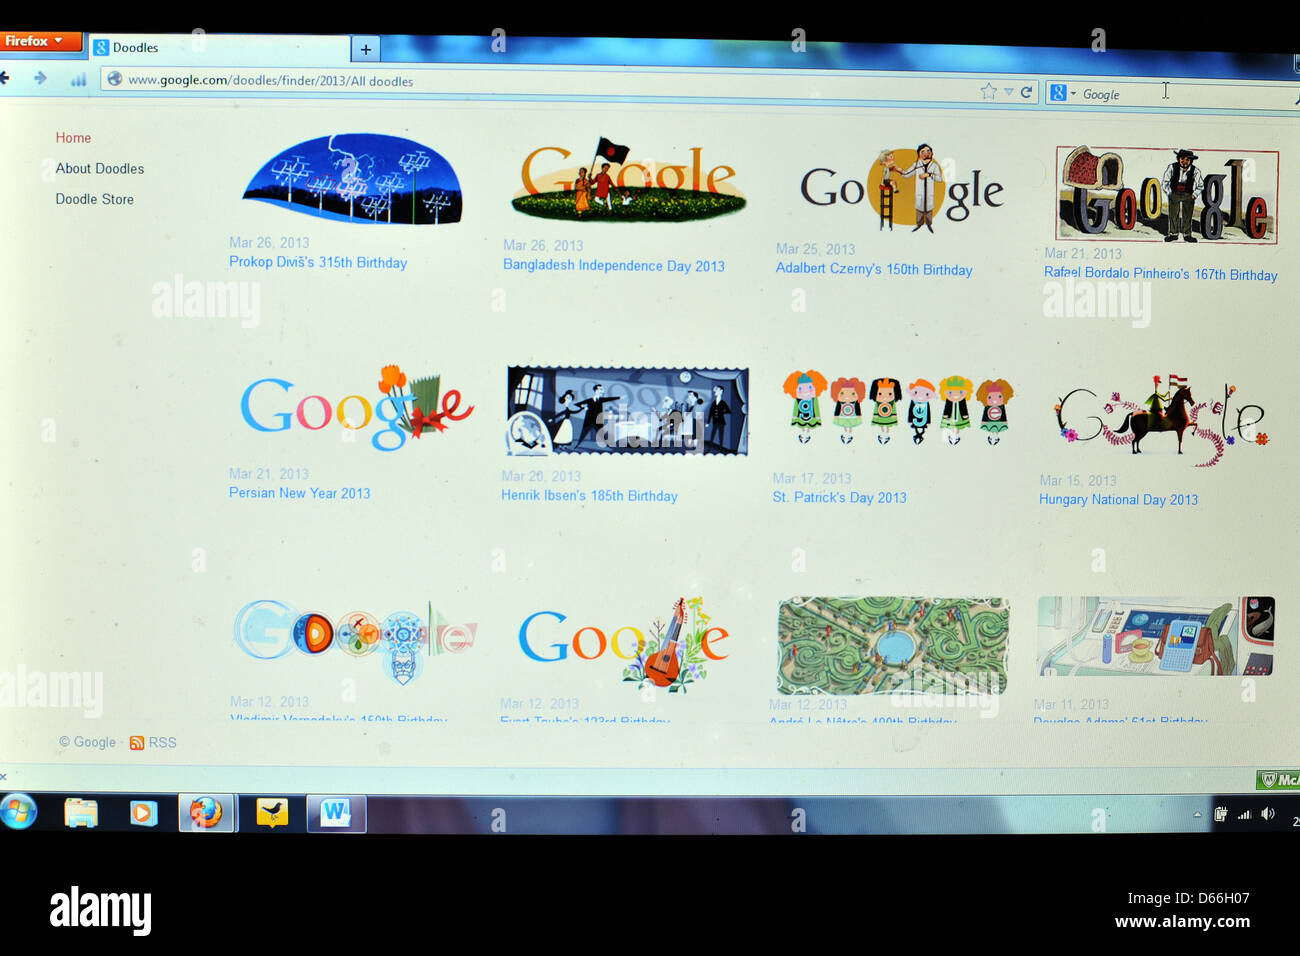 image of a computer screen showing images of different google themes